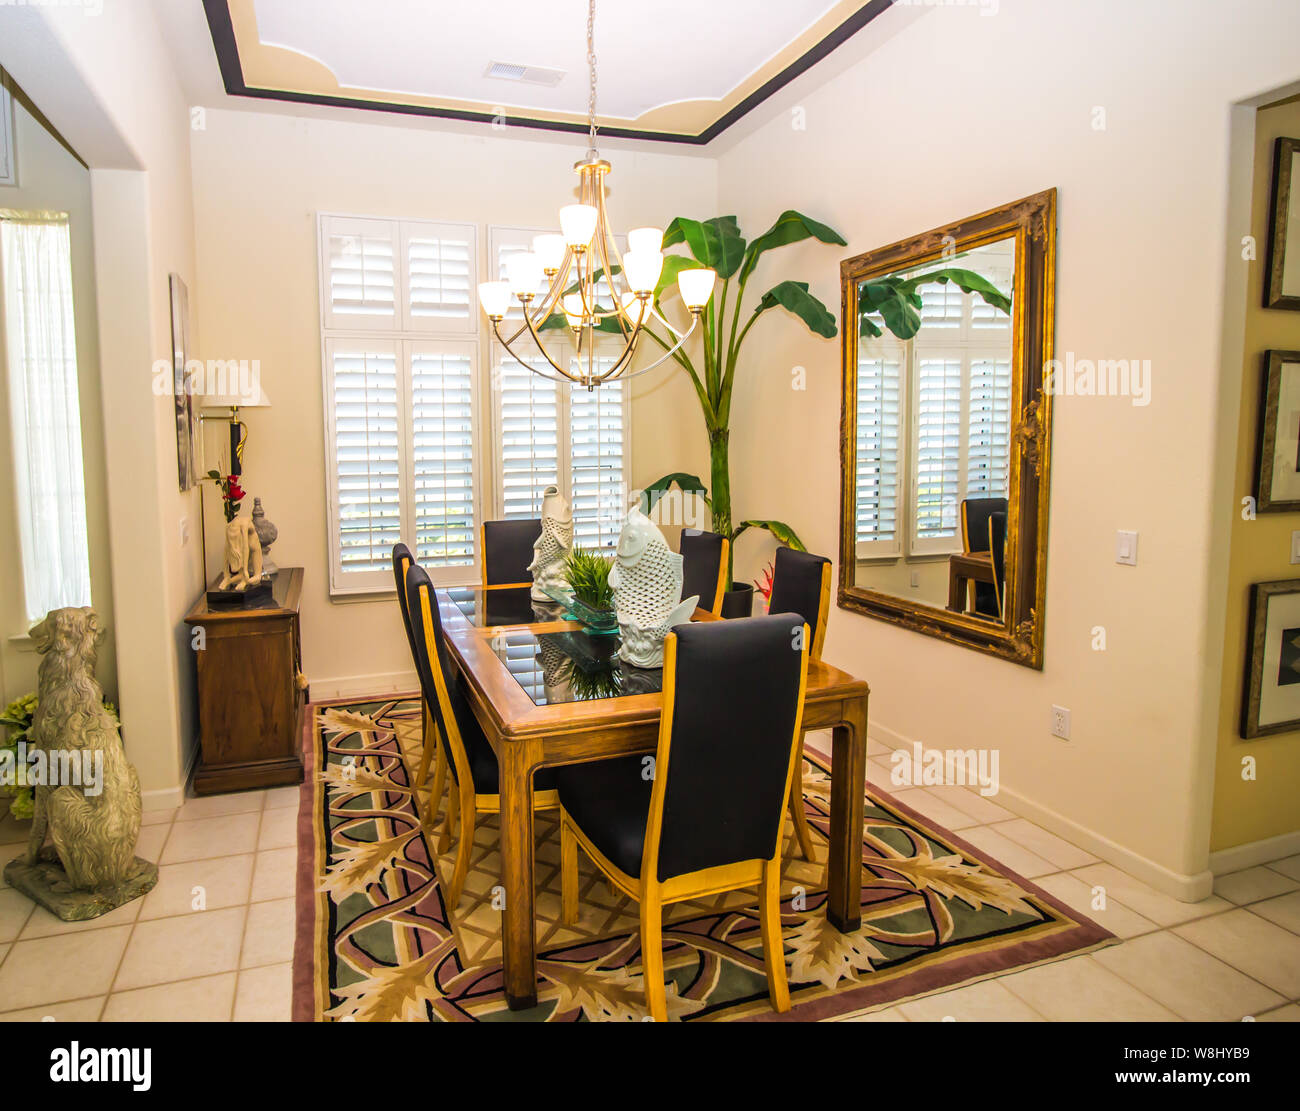 Dining Room With Large Mirror Glass Table And High Back Chairs Stock Photo Alamy